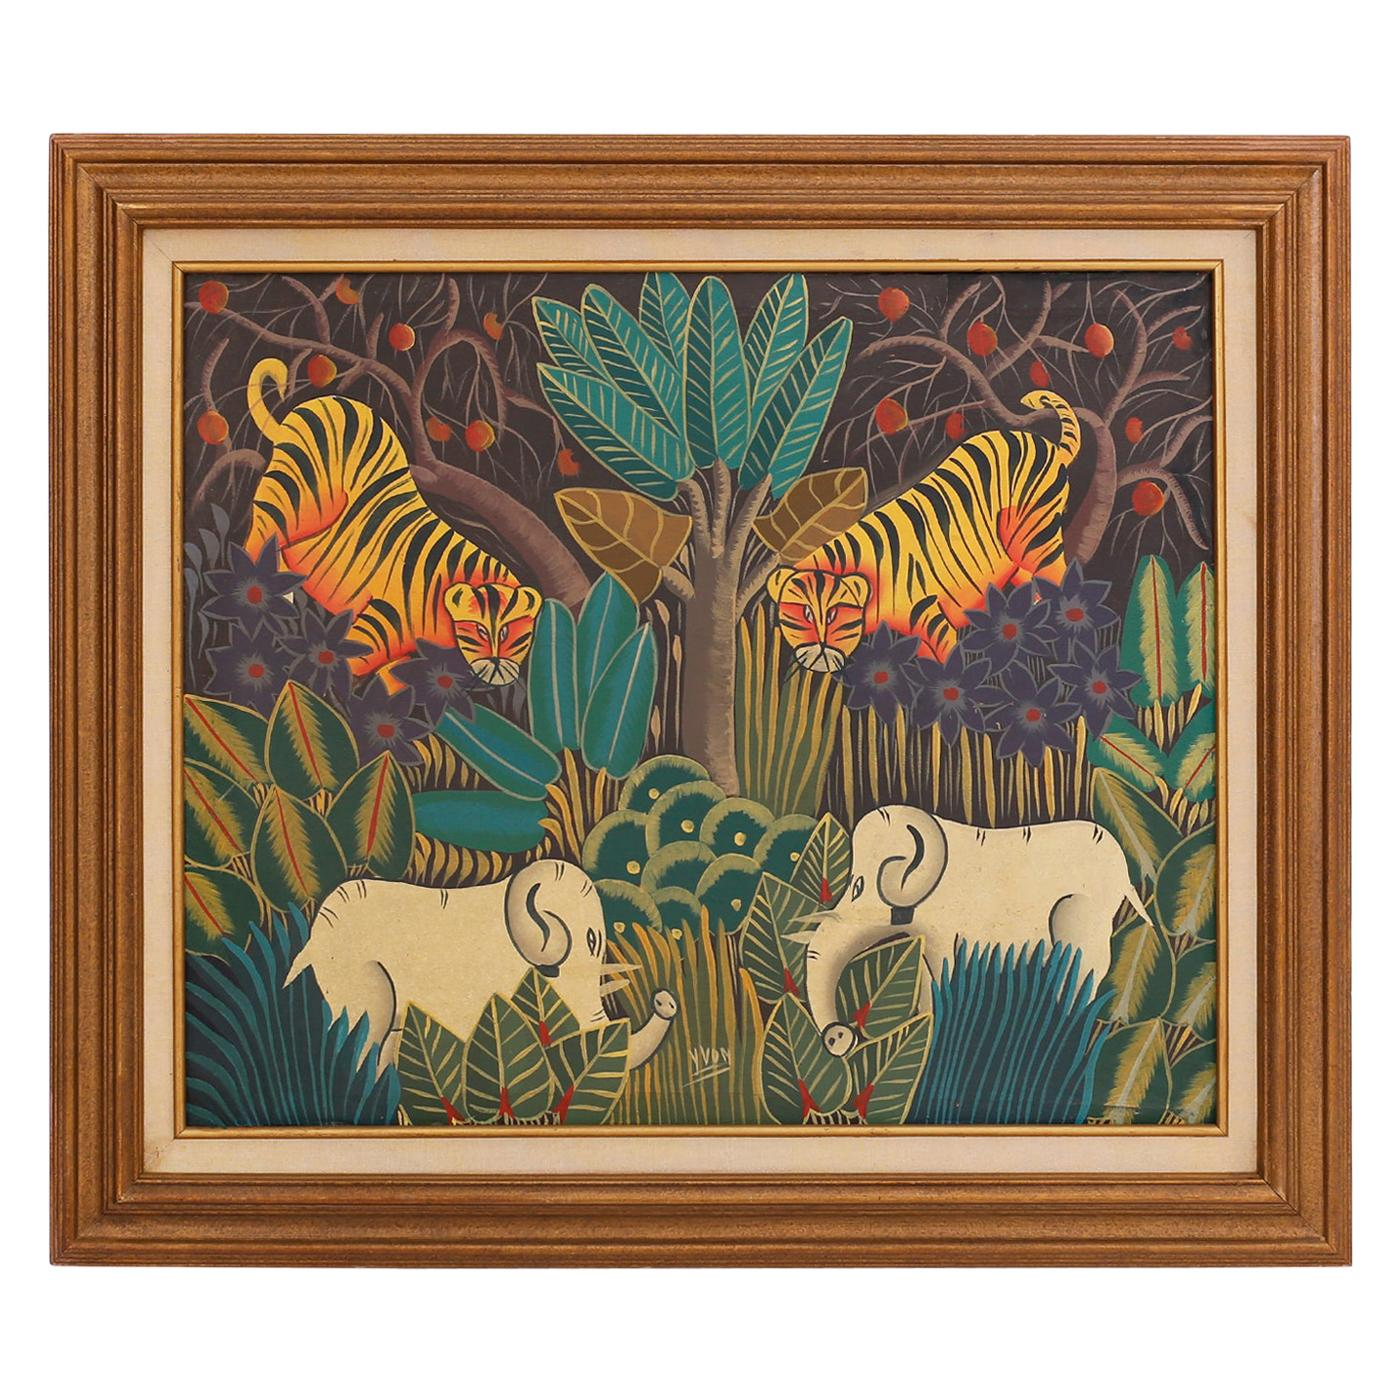 Haitian Oil Painting on Canvas with Tigers